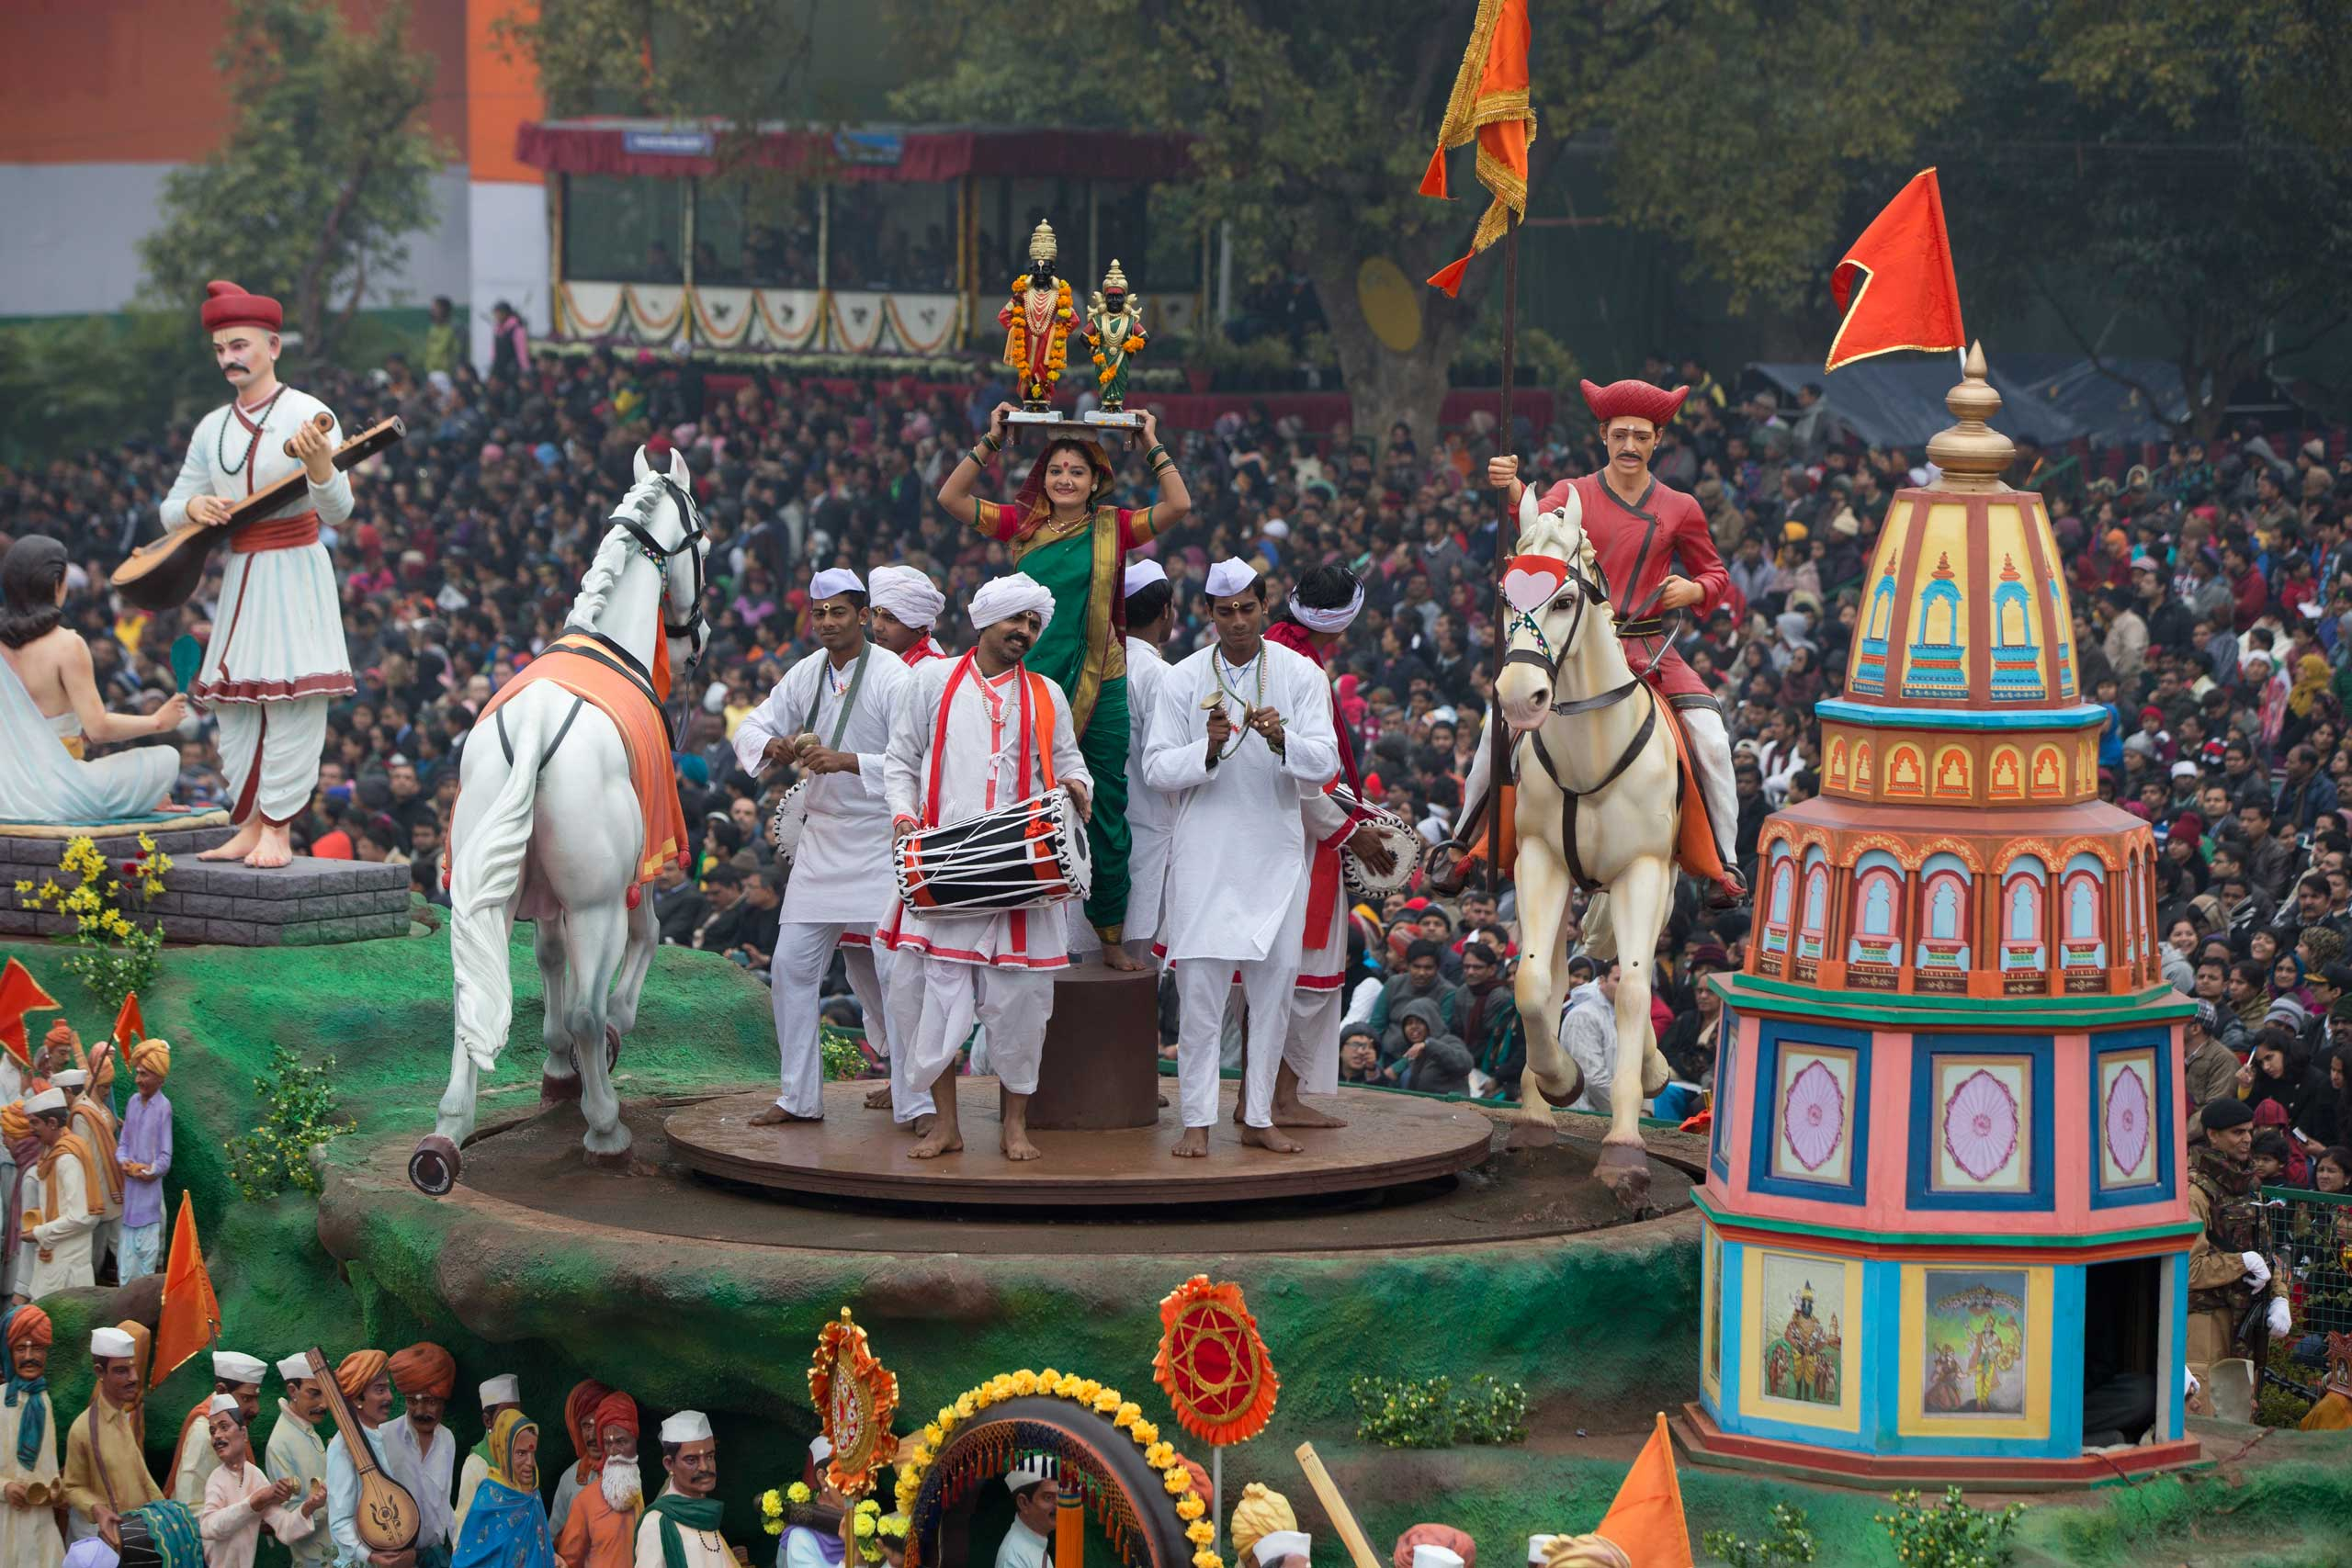 Performers spin around atop a float during the Republic Day Parade in New Delhi, Jan. 26, 2015.